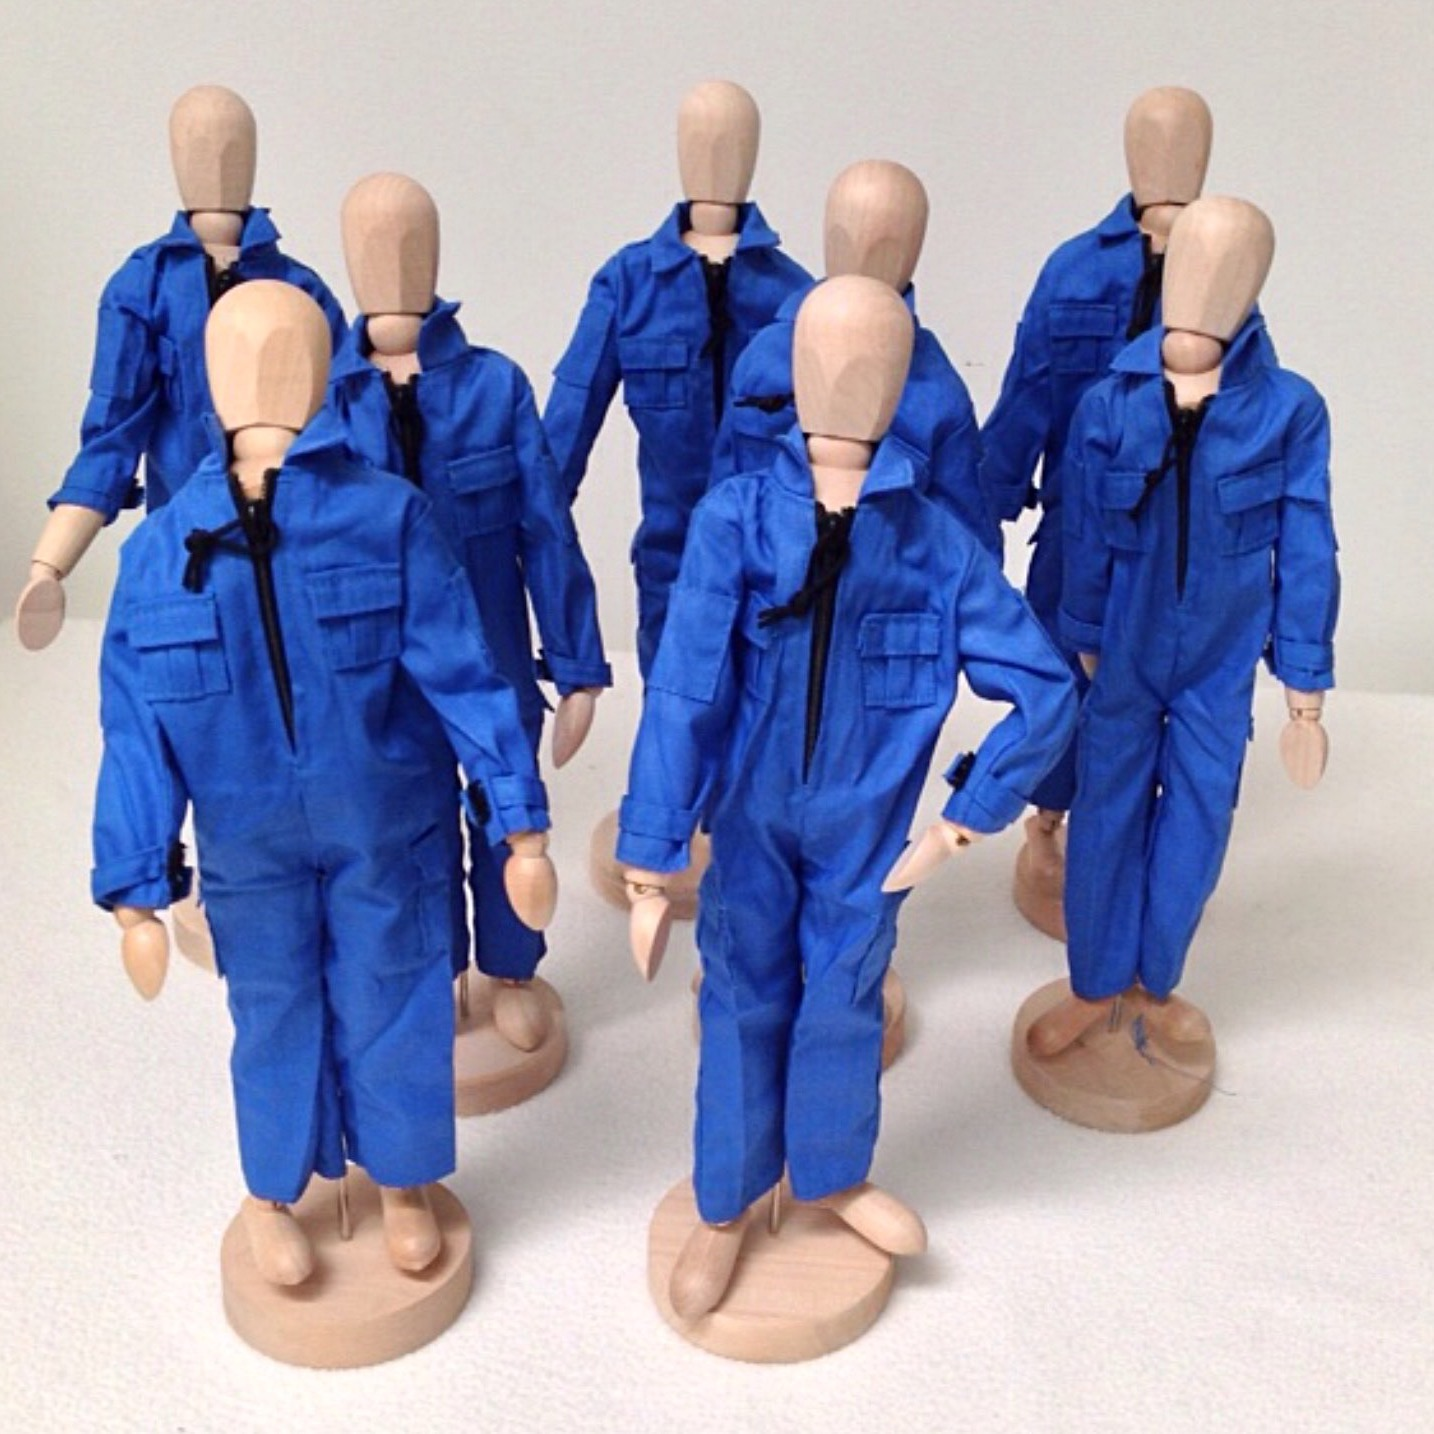 LITTLE PEOPLE GROUP W/BLUE JUMPSUITS